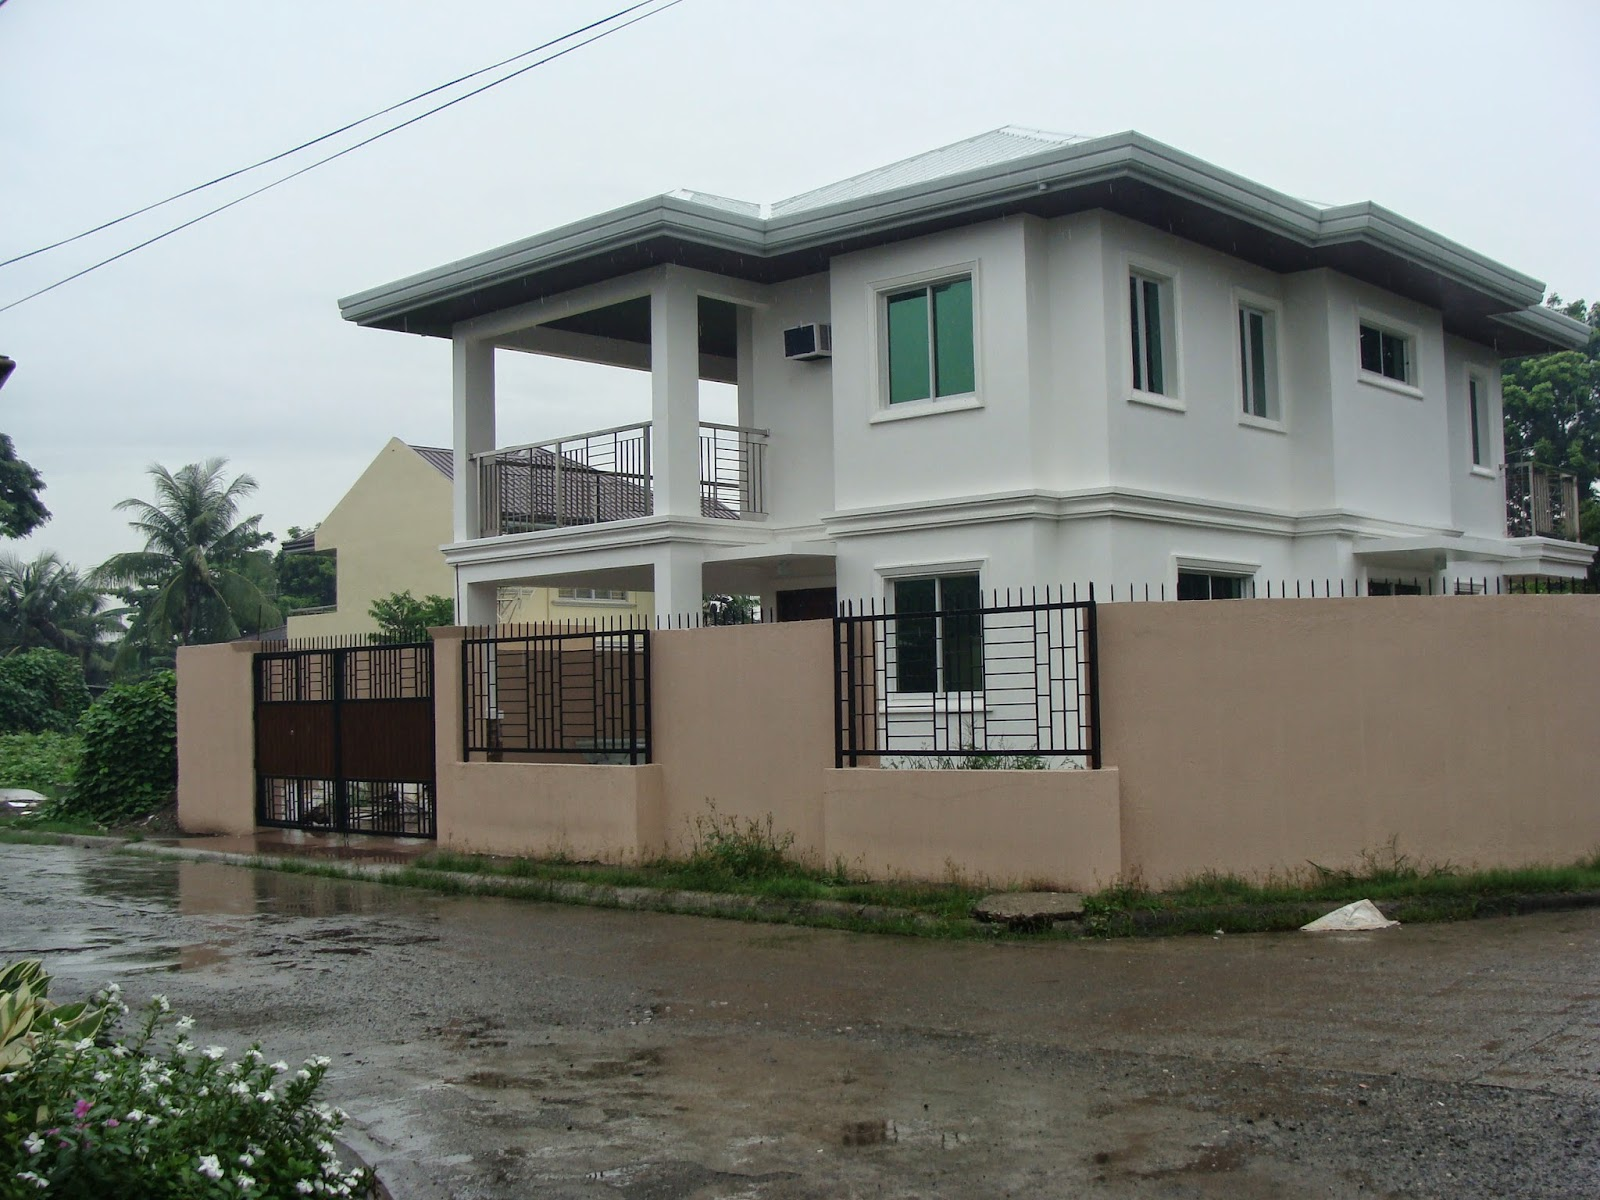 House plans and design house design two story philippines for Apartment type house plans philippines